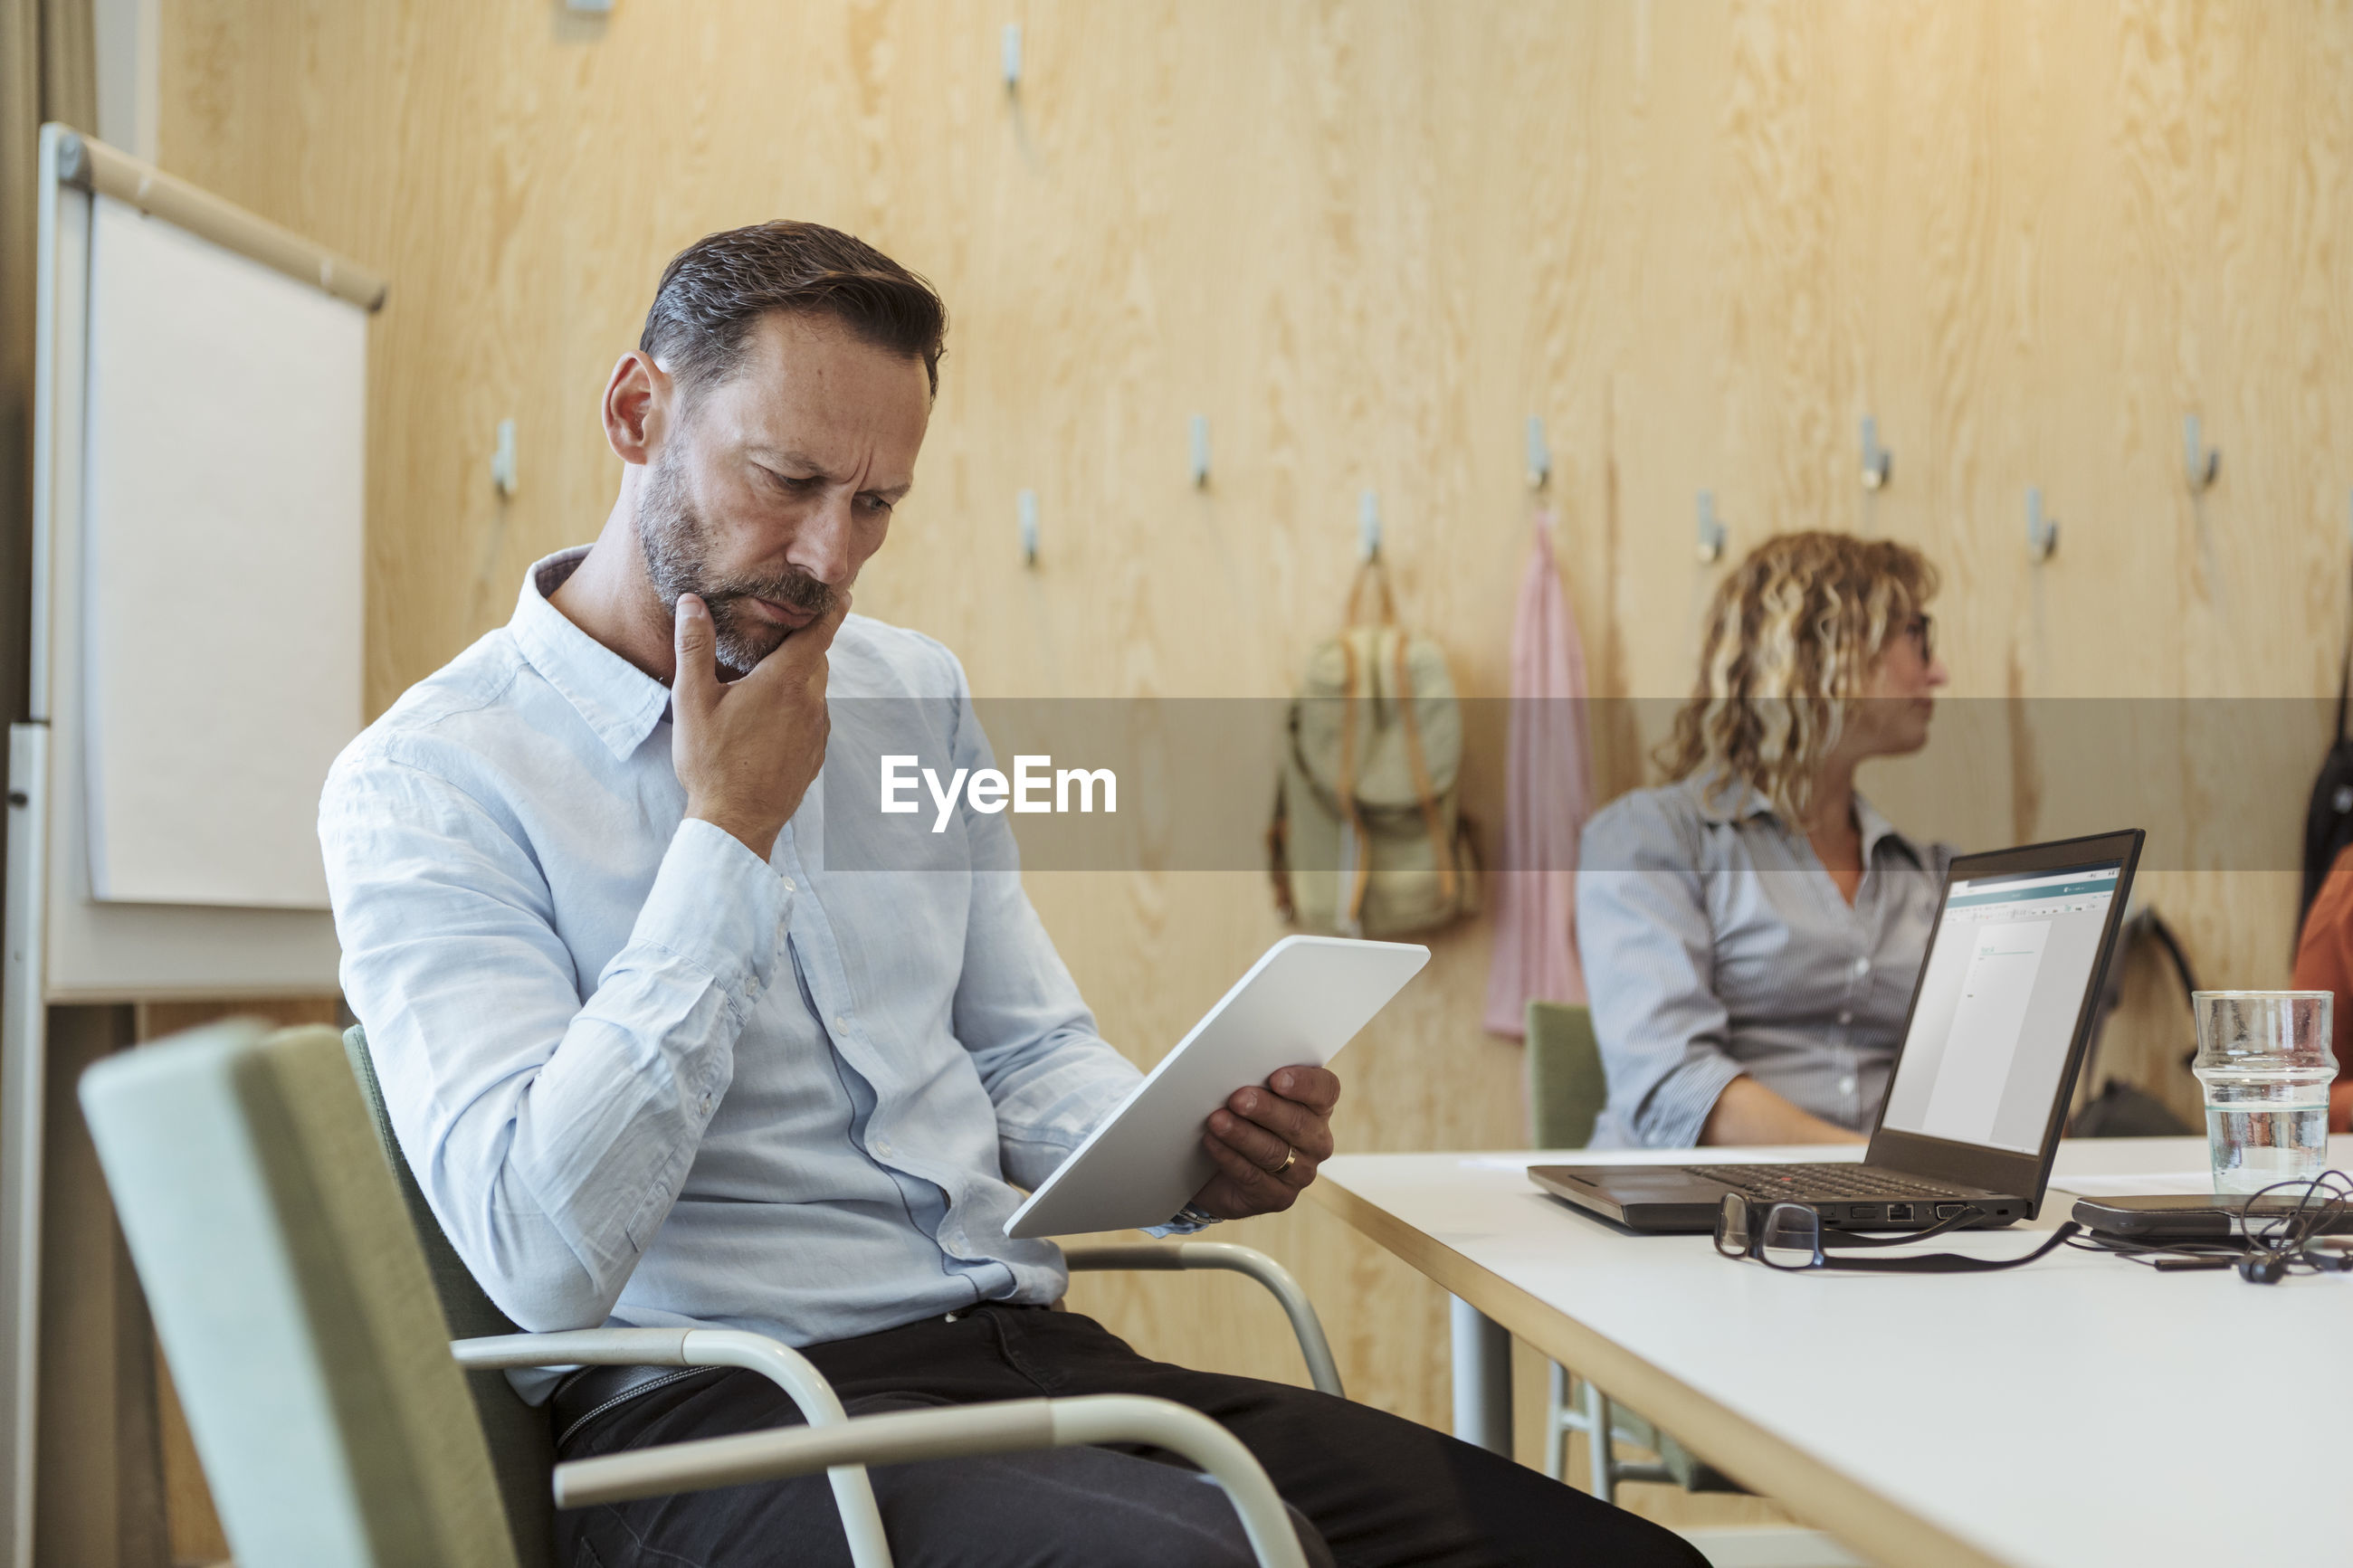 MAN USING MOBILE PHONE WHILE SITTING IN TABLE